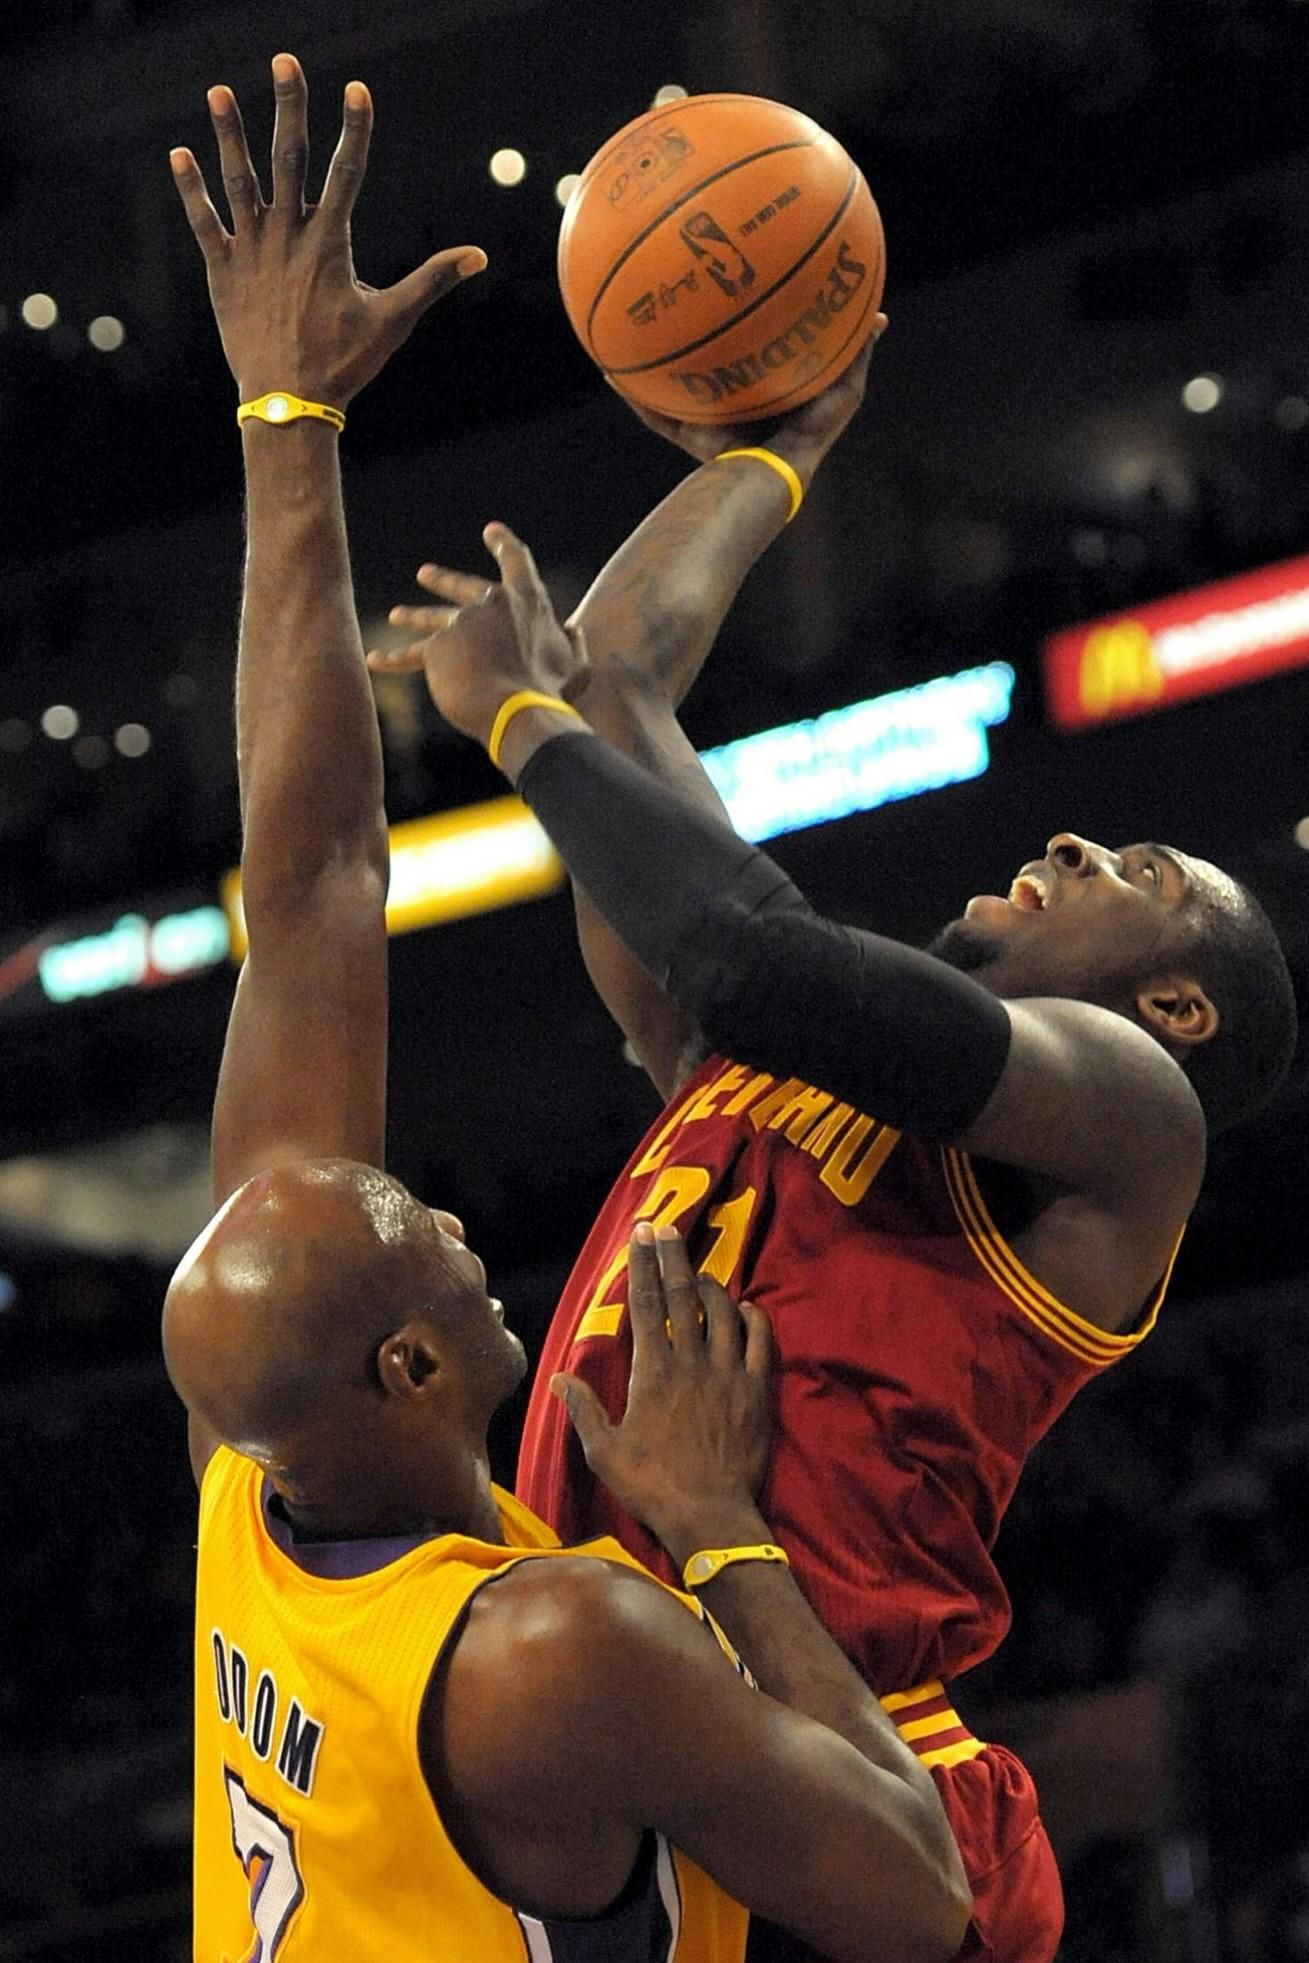 Cleveland Cavaliers center J.J. Hickson shoots a basket over Los Angeles Lakers forward Lamar Odom.